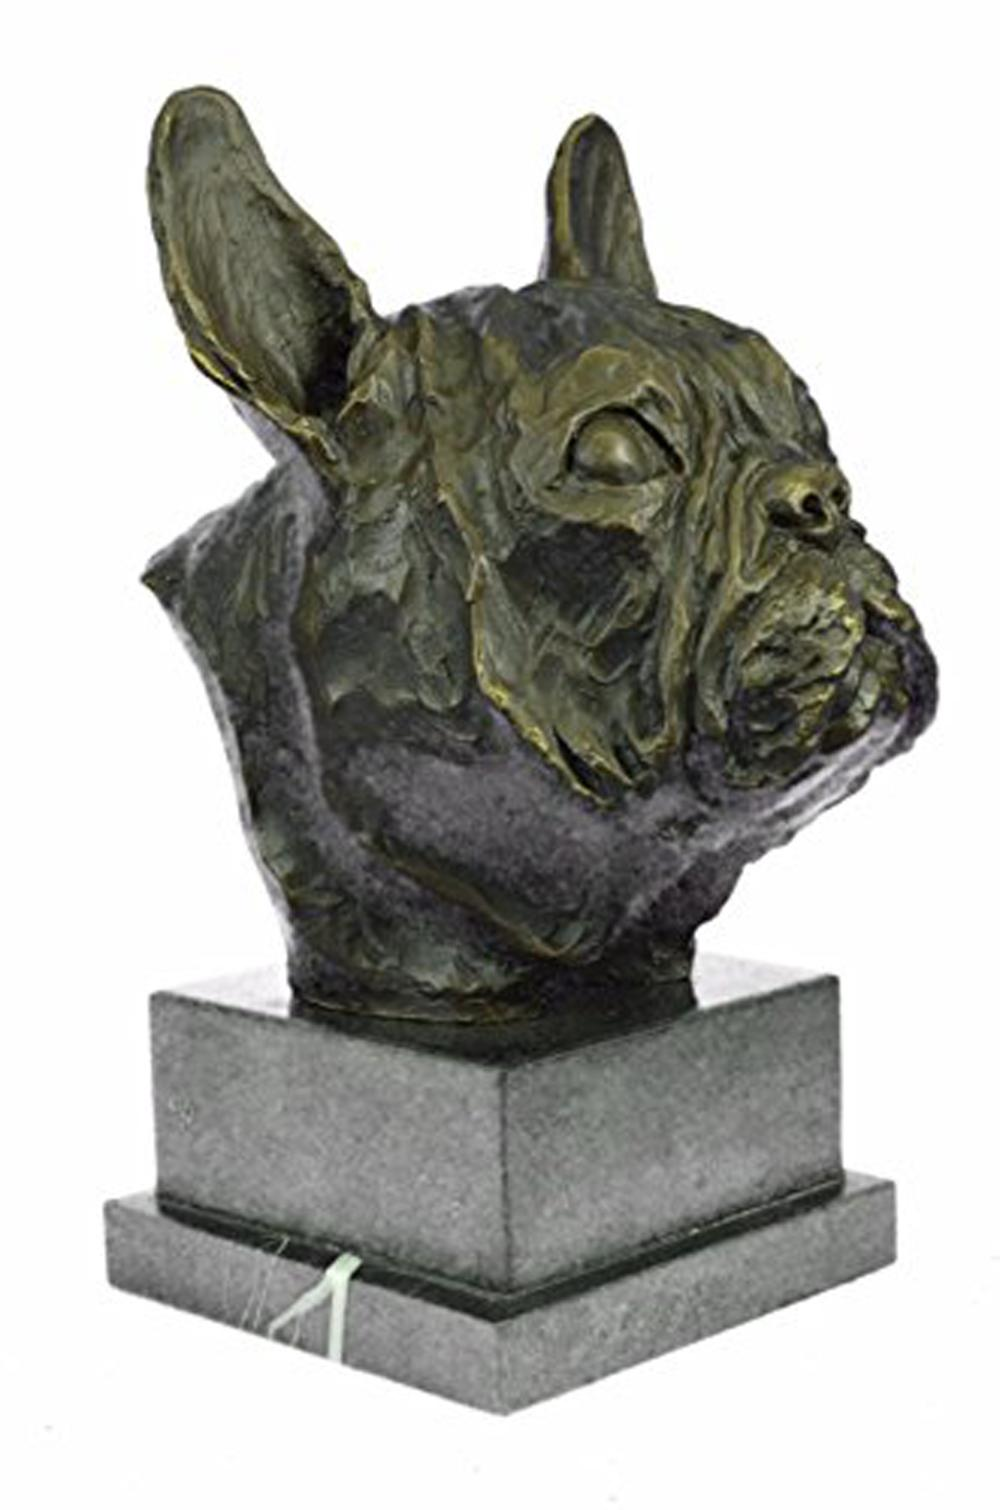 Man Best Friend French Bulldog Dog Bronze Sculpture